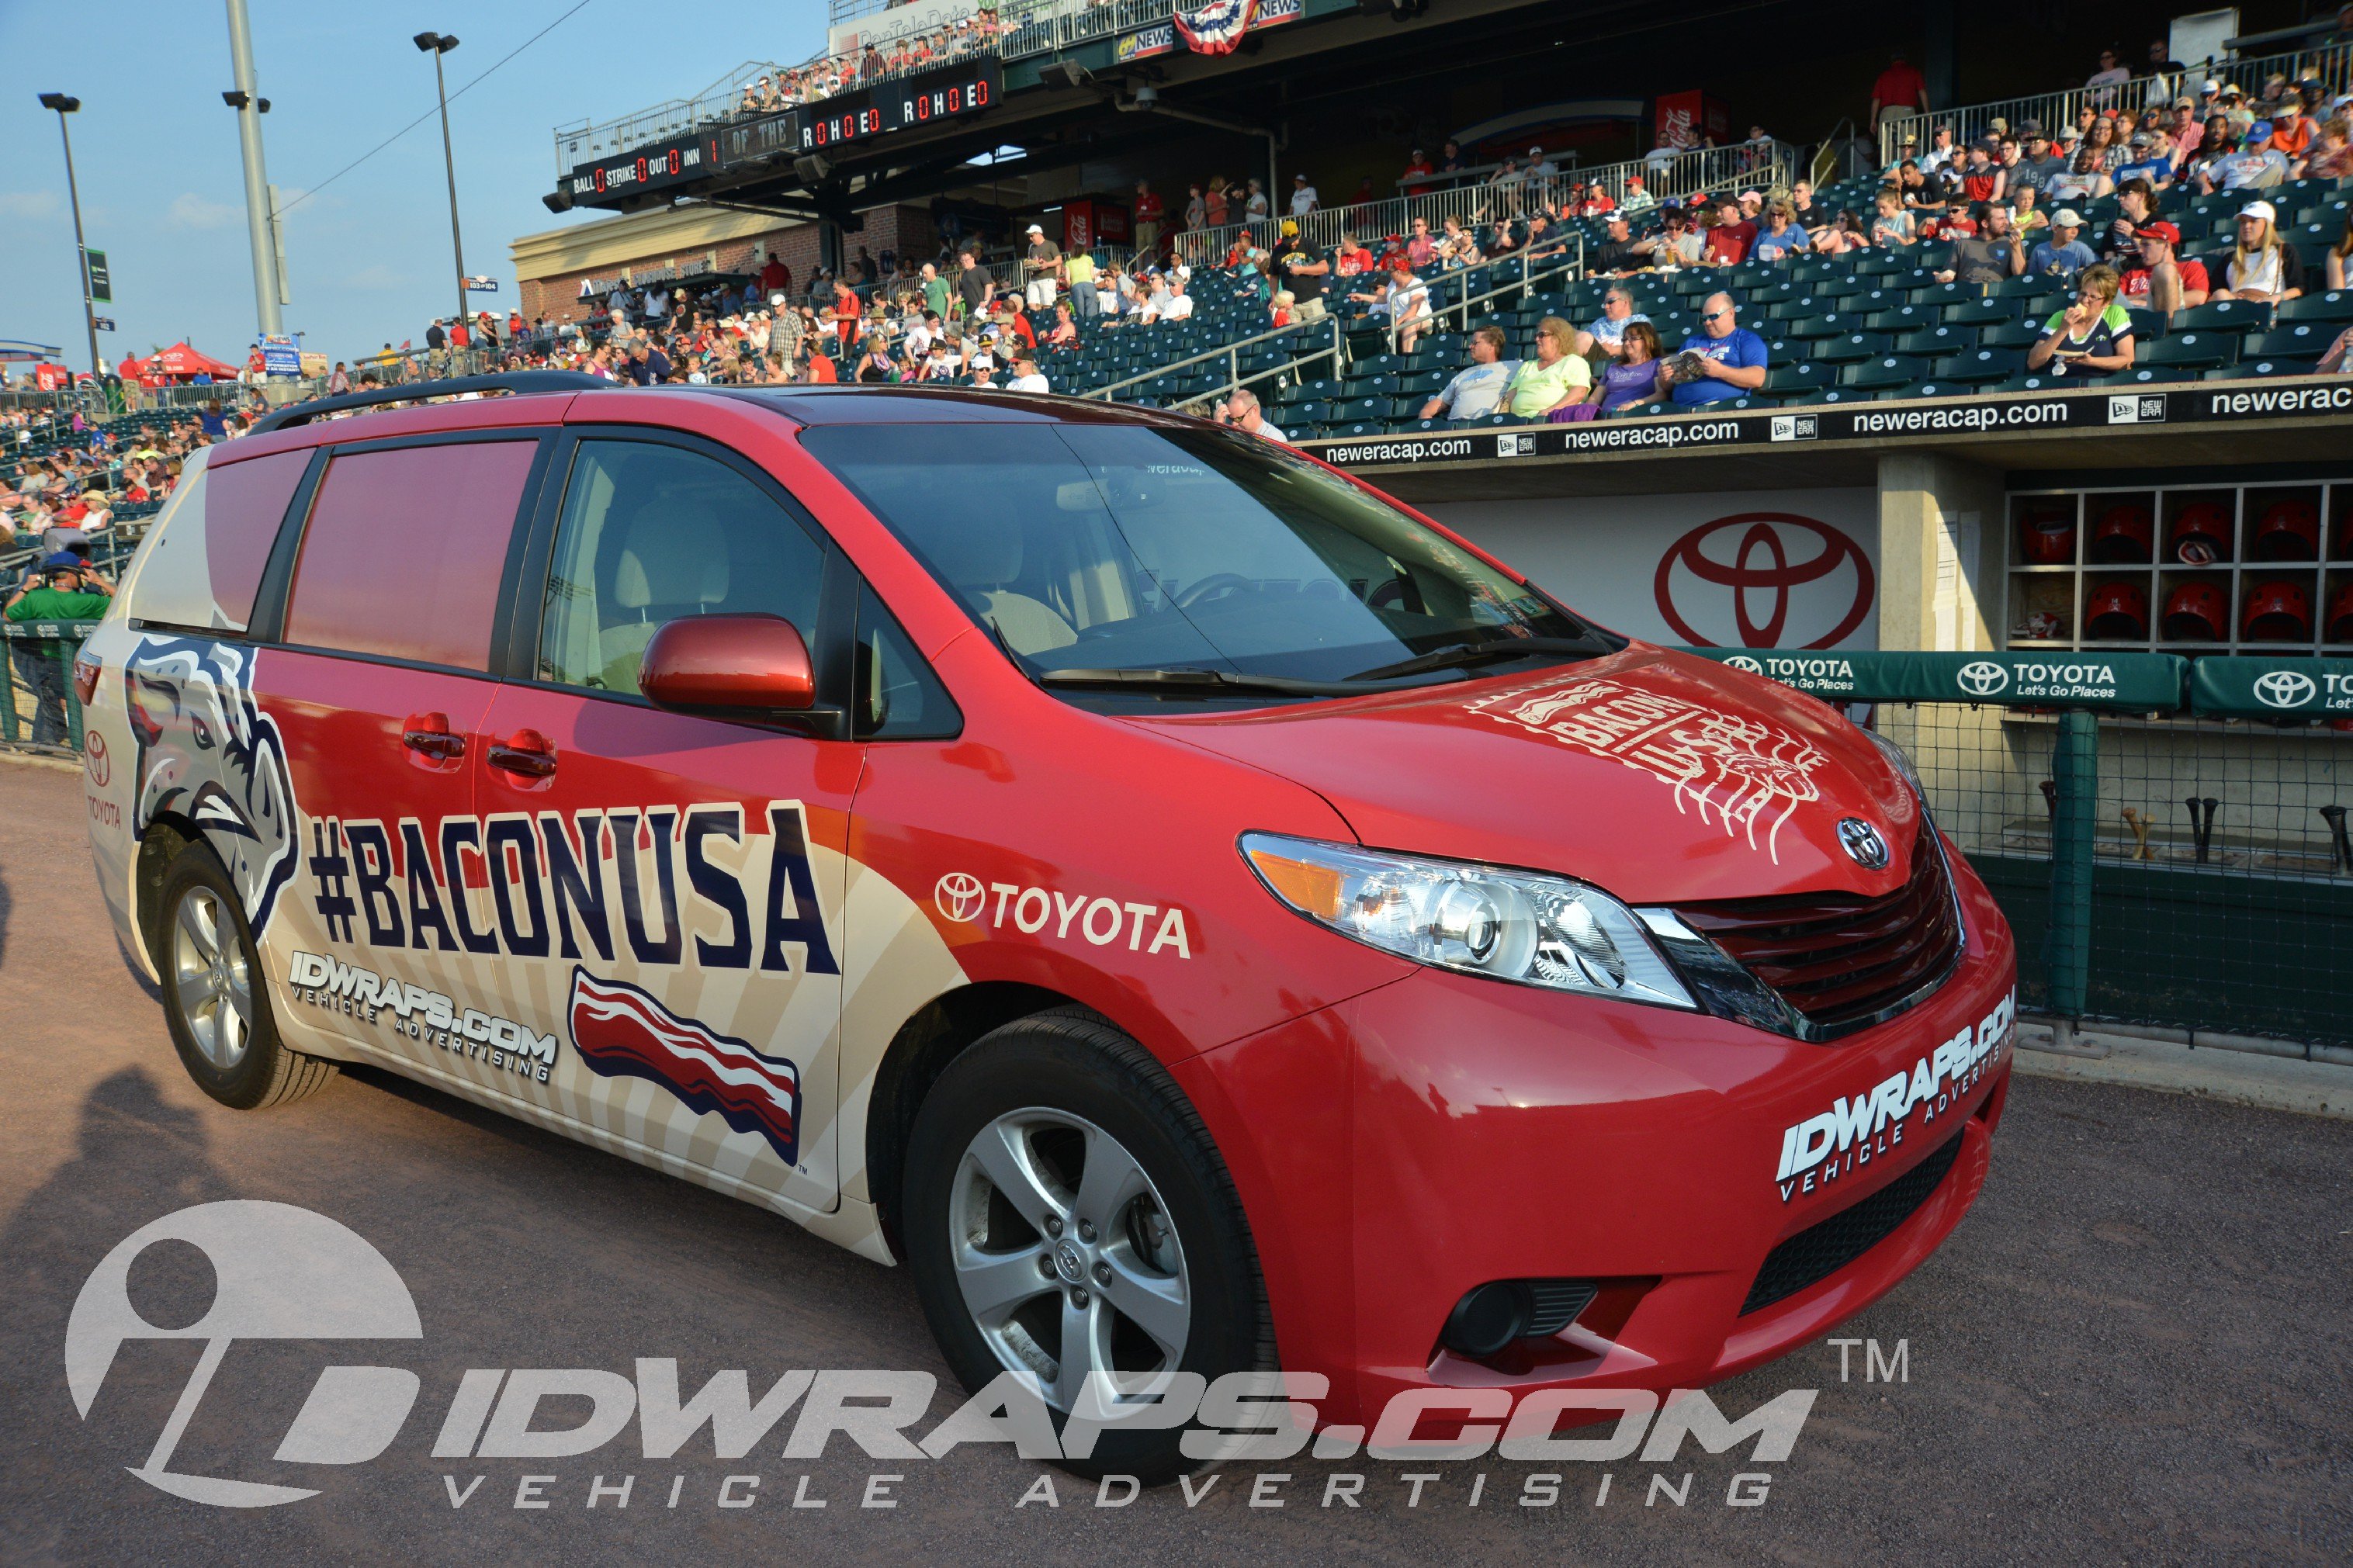 16-6 Baseball Team Wrap Ironpigs Toyota Sienna 3M Vinyl Graphics